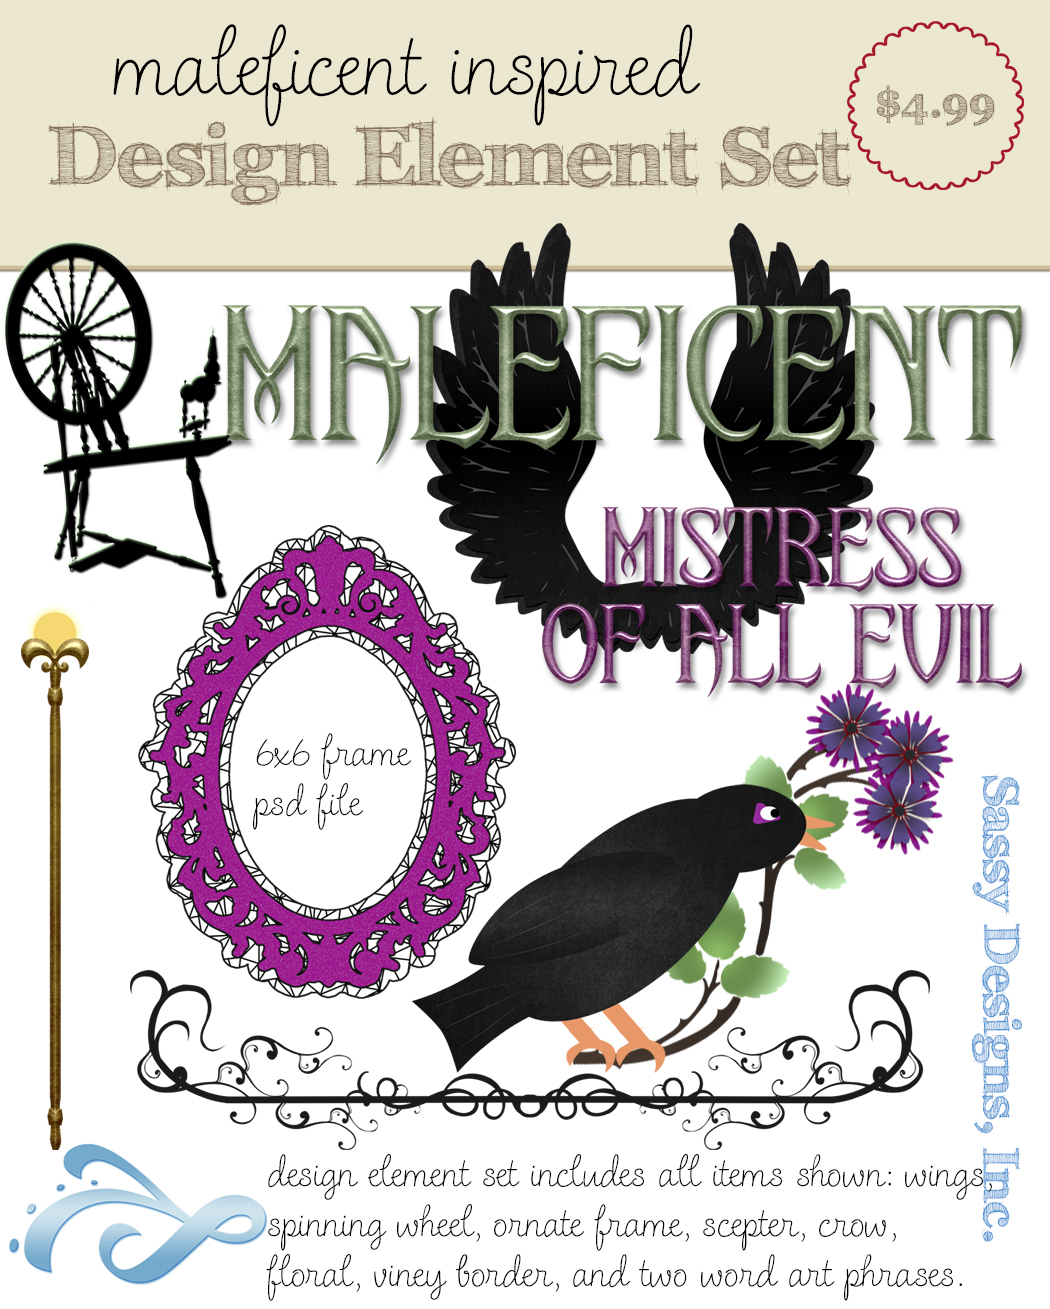 Maleficent Inspired Design Elements